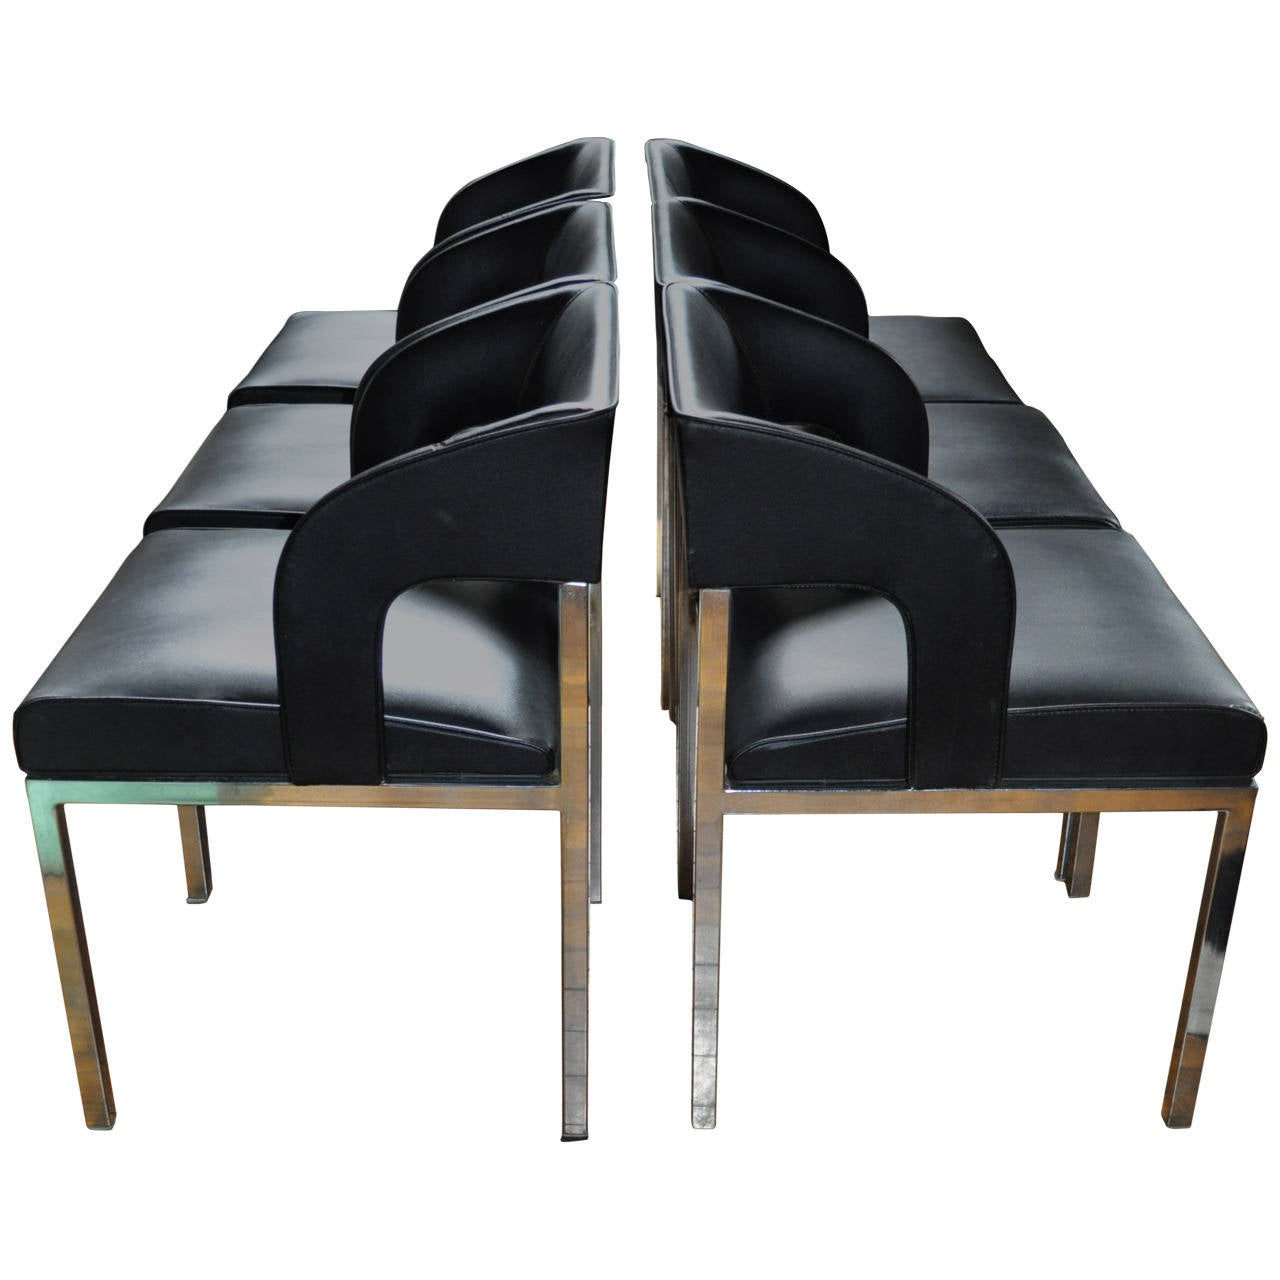 Mid century modern chrome dining chairs at 1stdibs for Modern chrome dining chairs